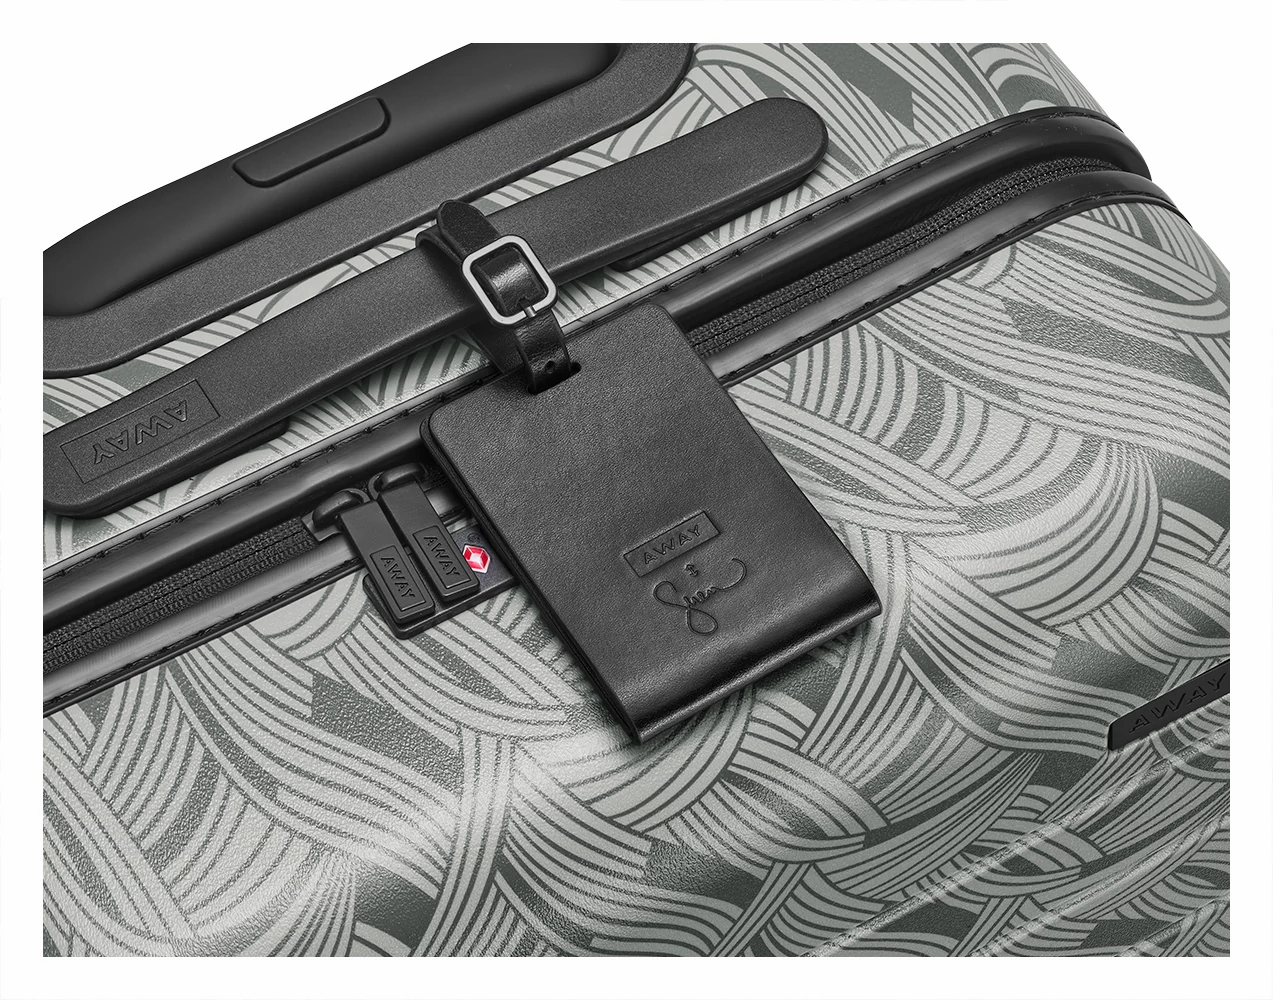 Light-Swirl leather luggage tag shown on handle of Light-Swirl hard suitcase.